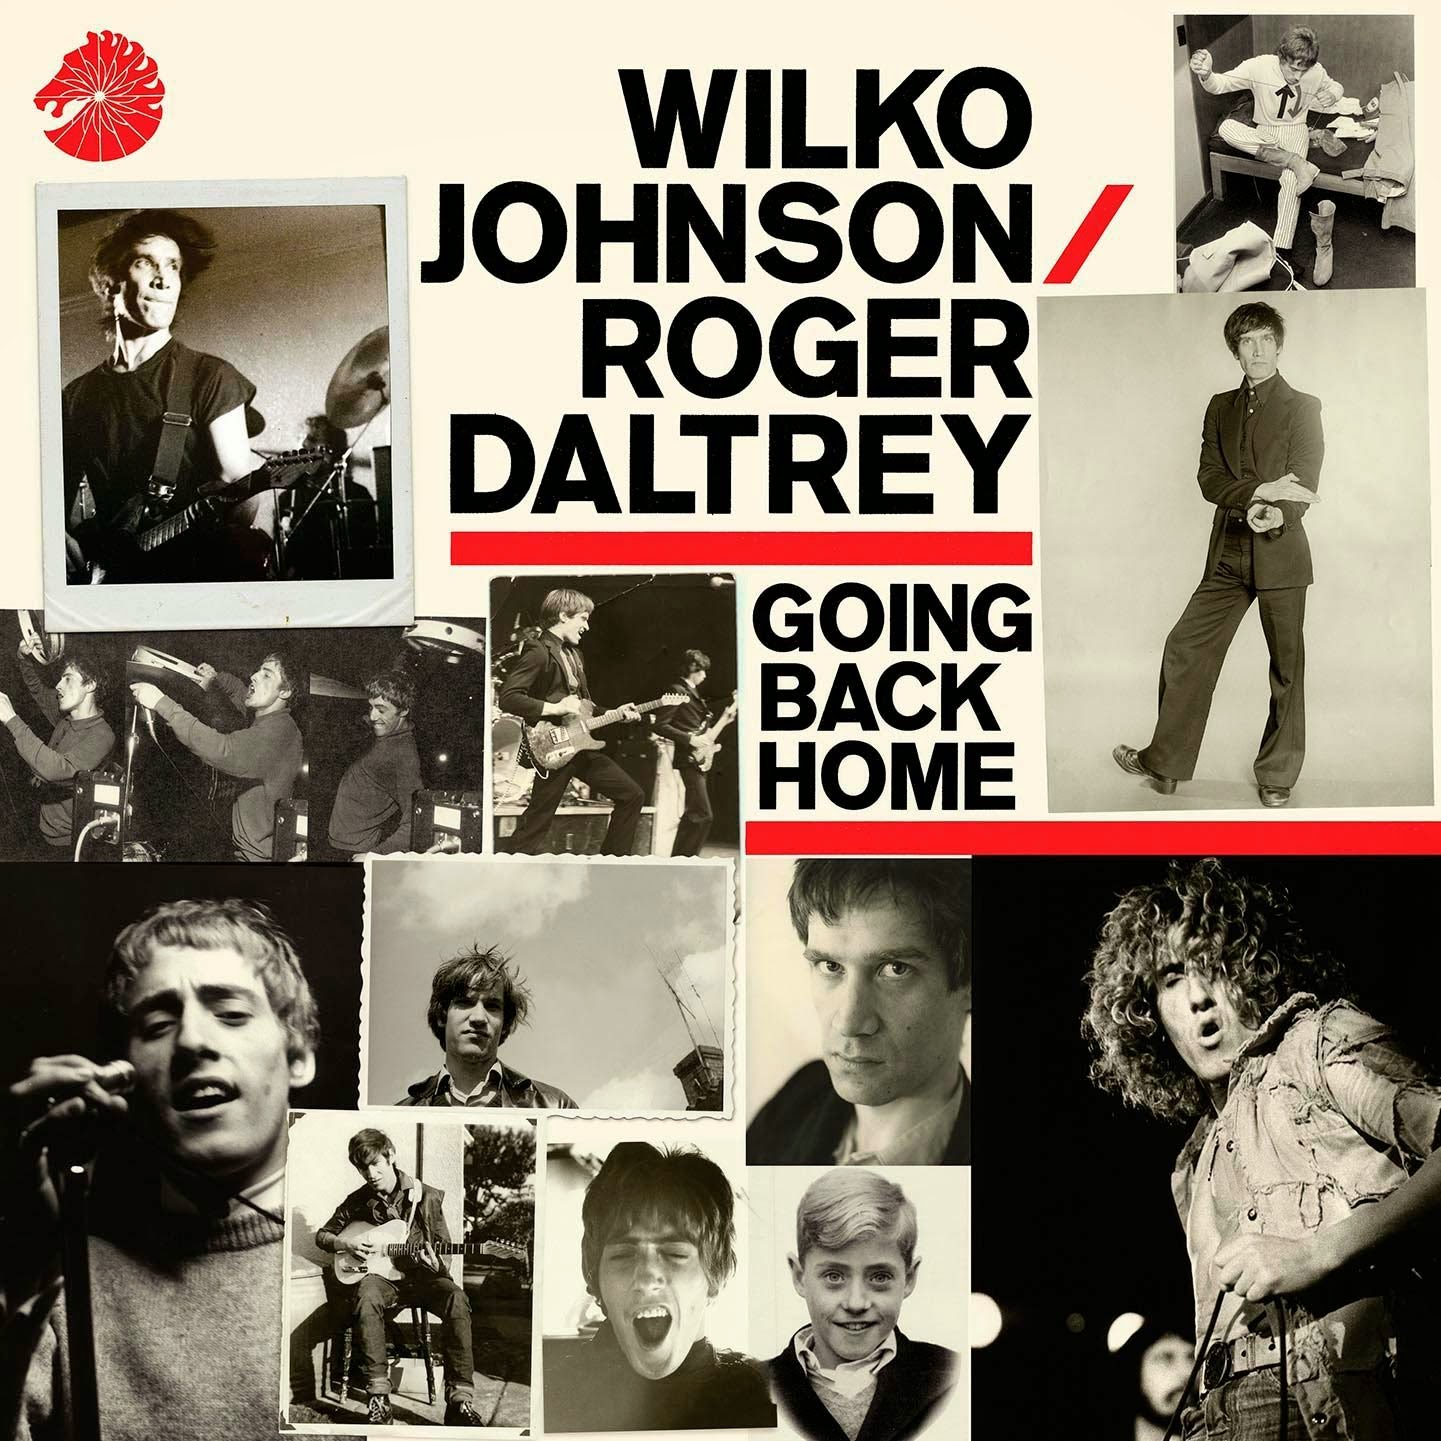 WILKO JOHNSON & ROGER DALTREY - (2014) Going back home